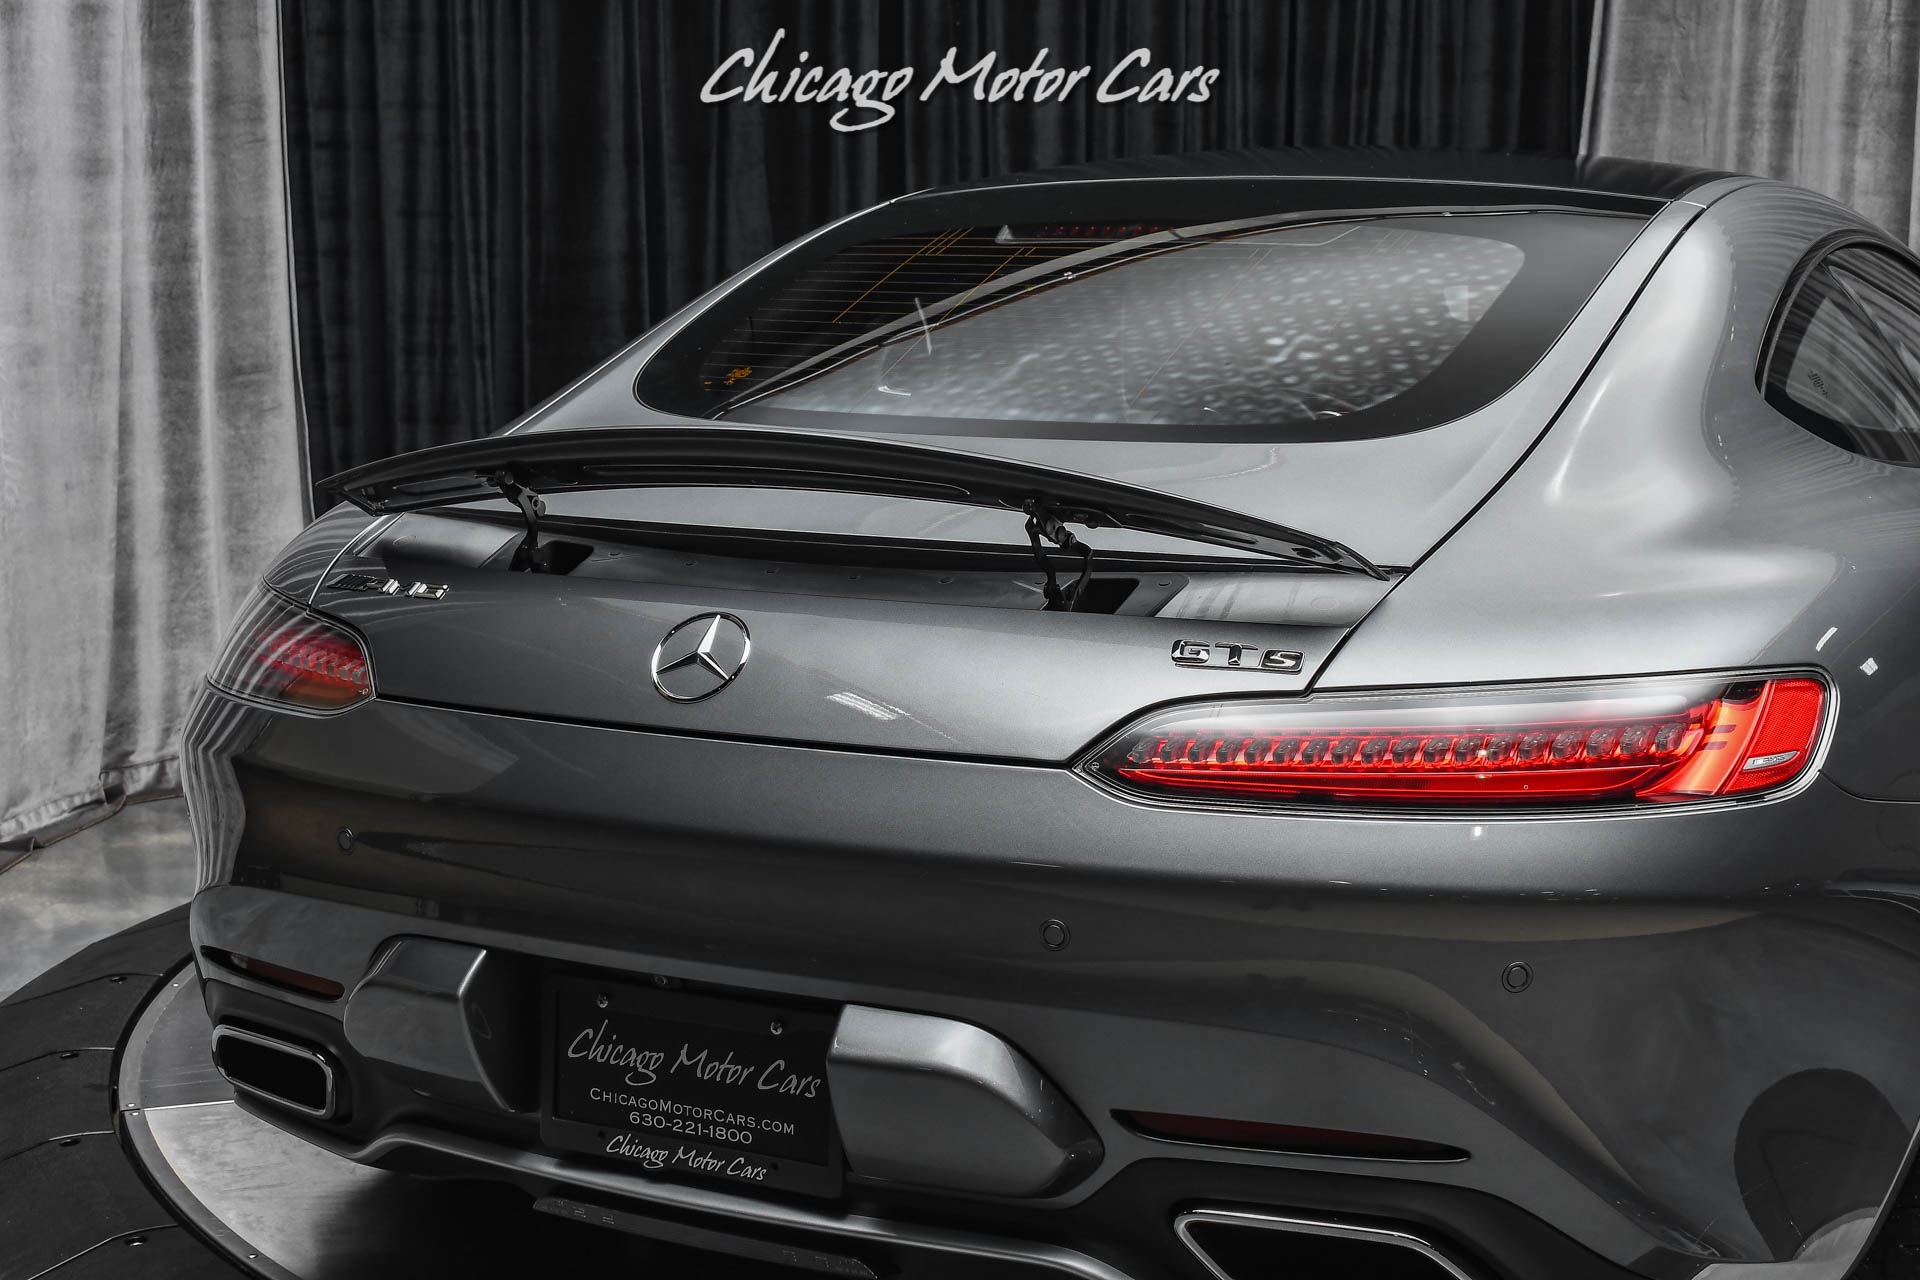 Used-2016-Mercedes-Benz-AMG-GT-S-Exclusive-Interior-Package-Panoramic-Glass-Roof-Low-Miles